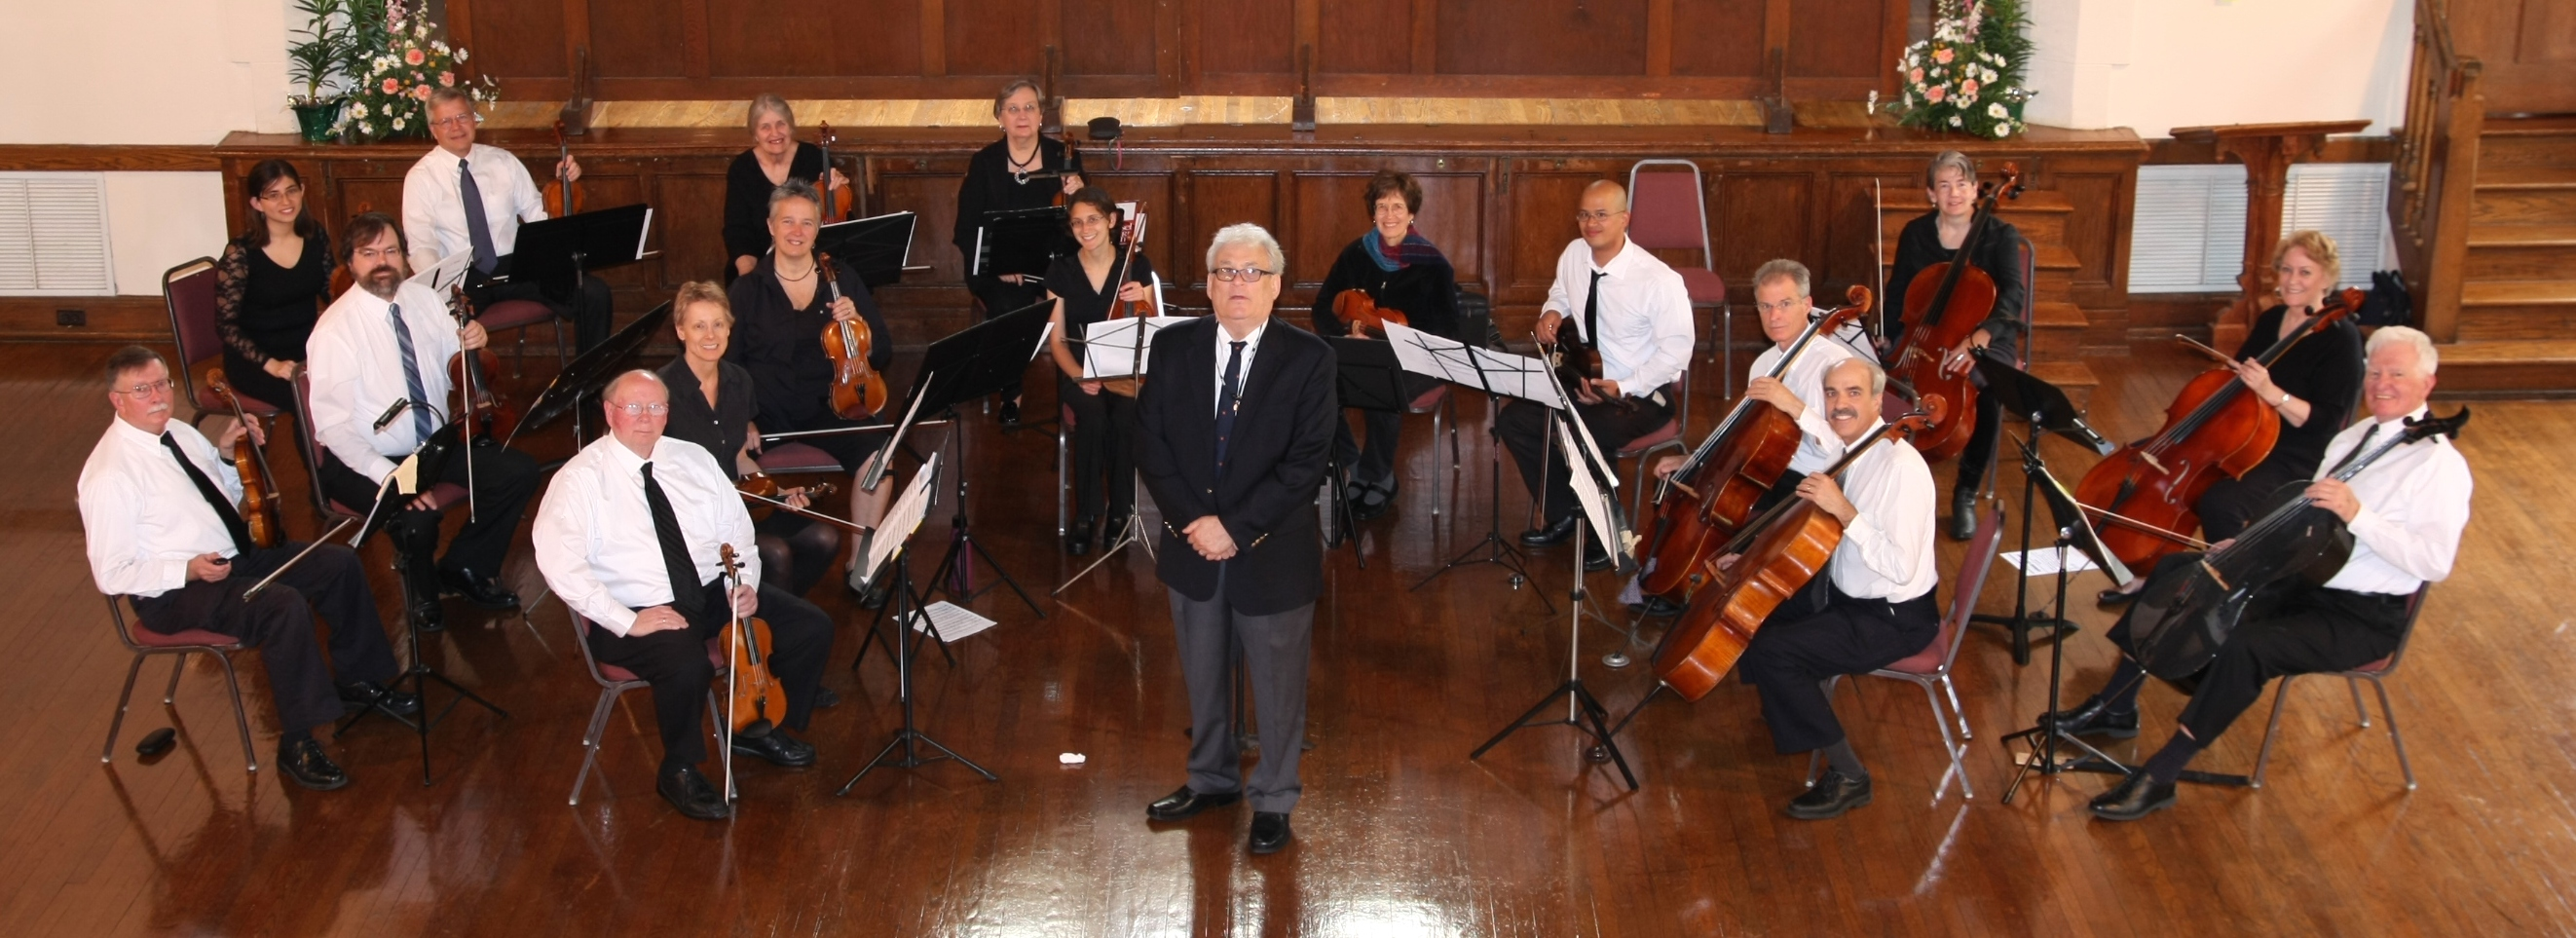 Blue ridge chamber orchestra for Chambre orchestra